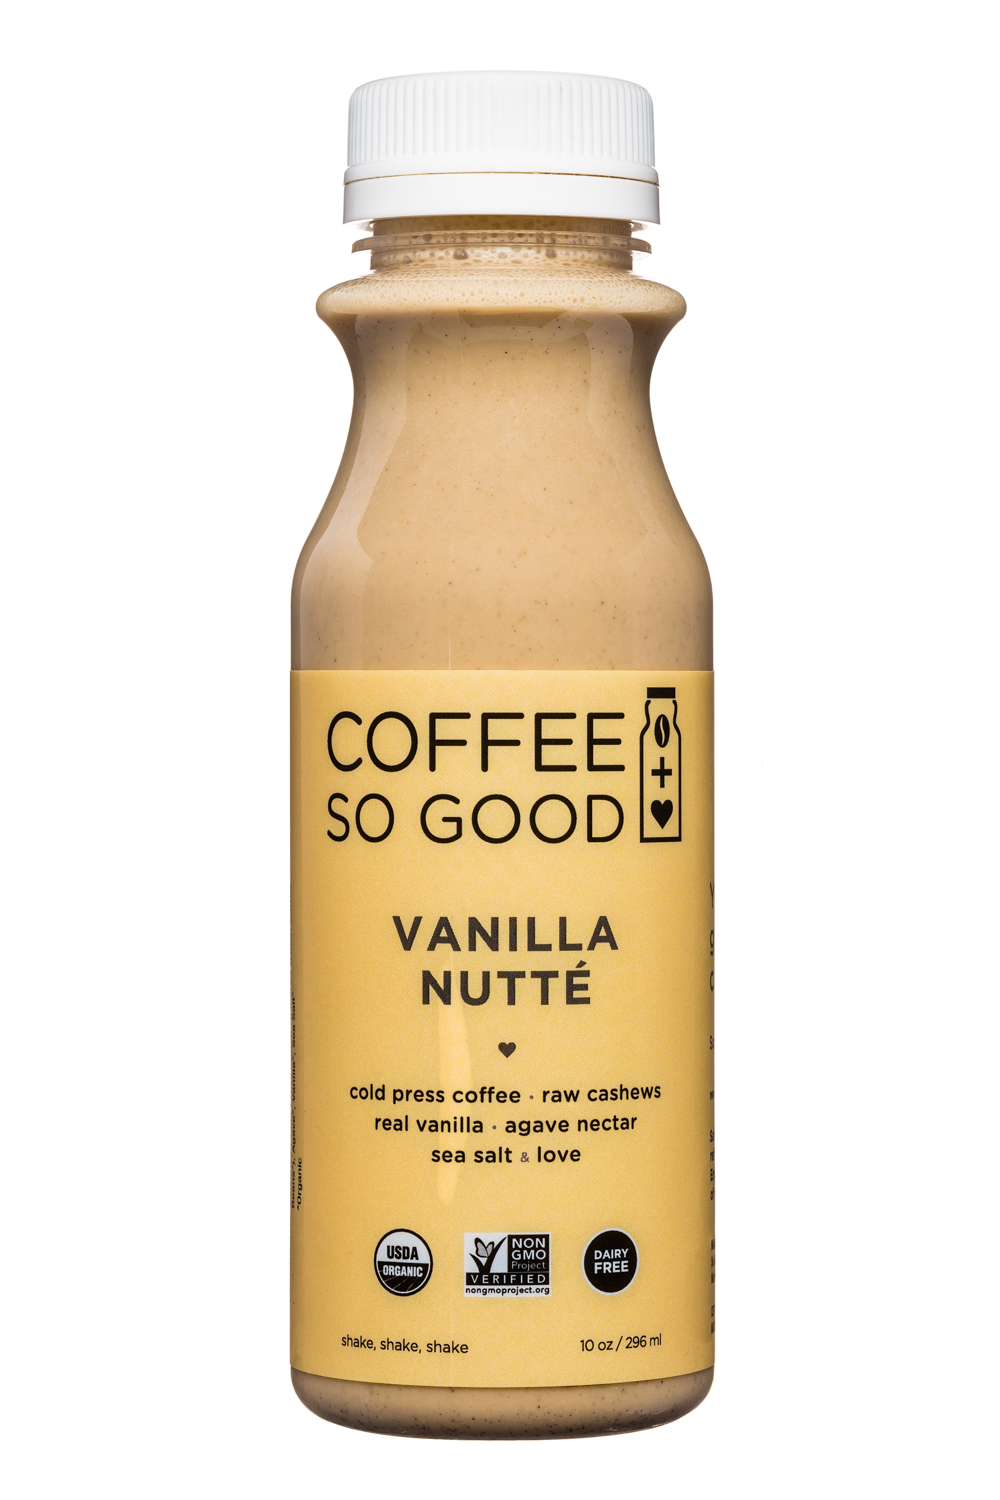 Coffee So Good: CoffeeSoGood-10oz-ColdPress-VanillaNutte-Front